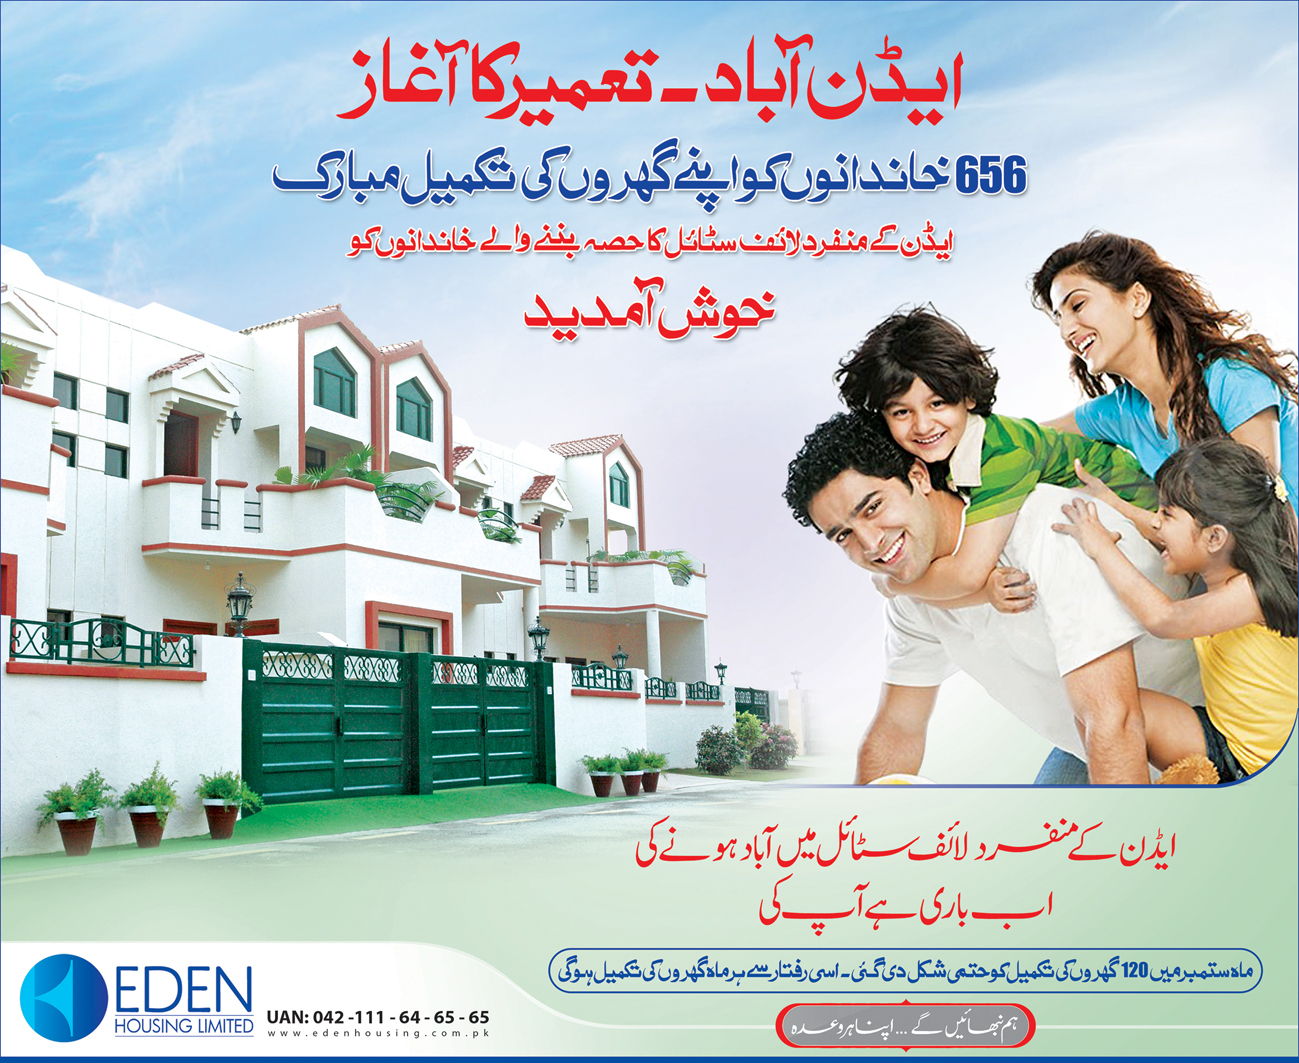 Oct-13 (2012) Eden Abad (Completion of Homes Ad) 27x8 Urdu Colour-09 copy